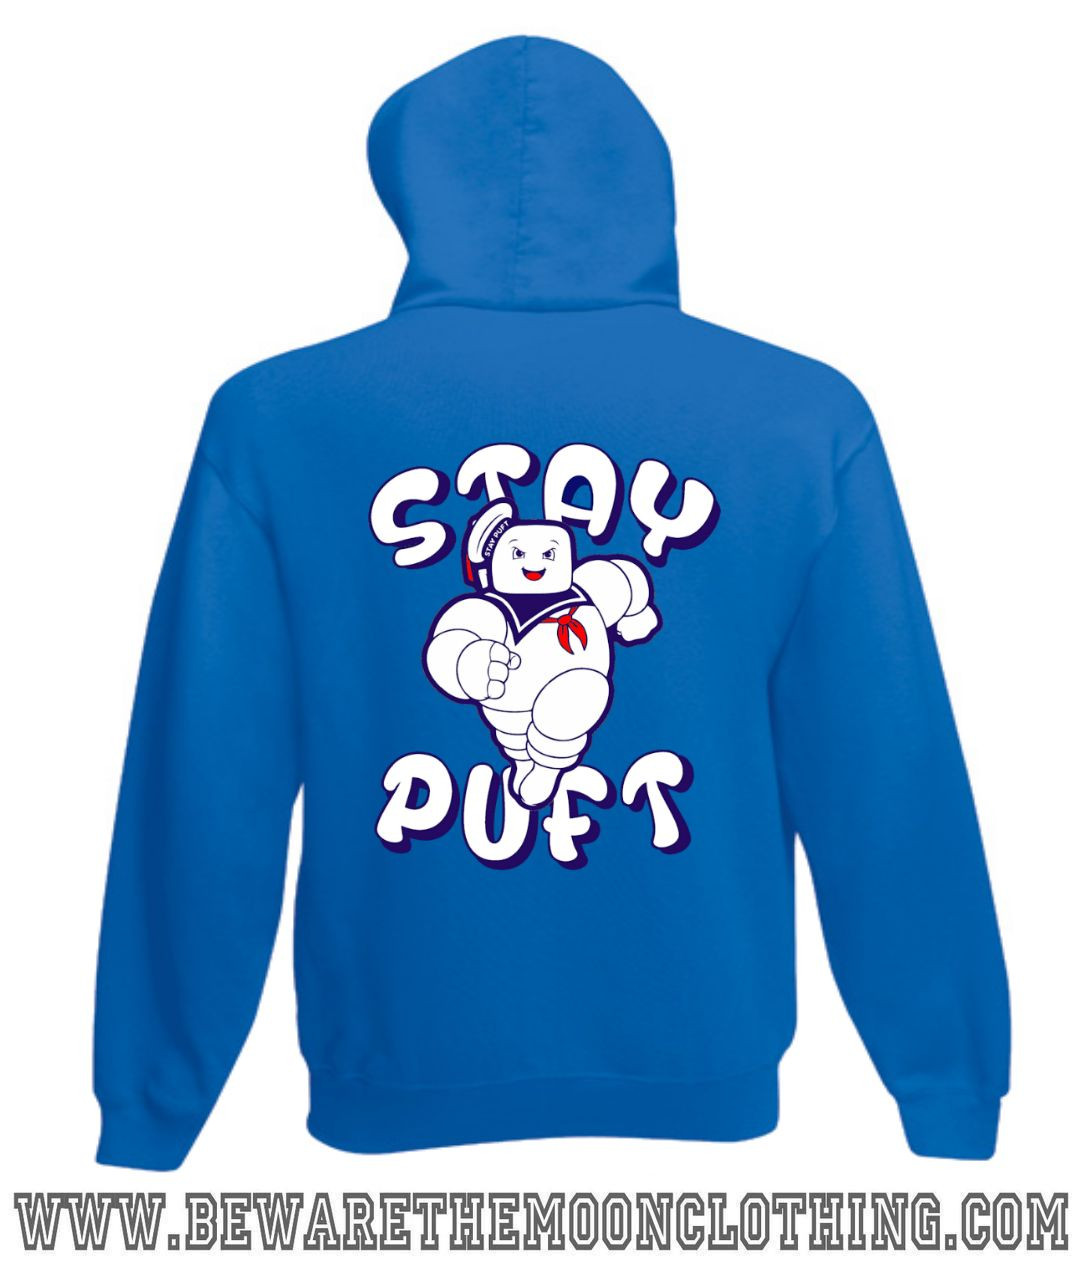 MARSHMALLOW MAN HOODY HOODIE FUNNY STAY PUFT GHOSTBUSTERS RETRO QUALITY NEW